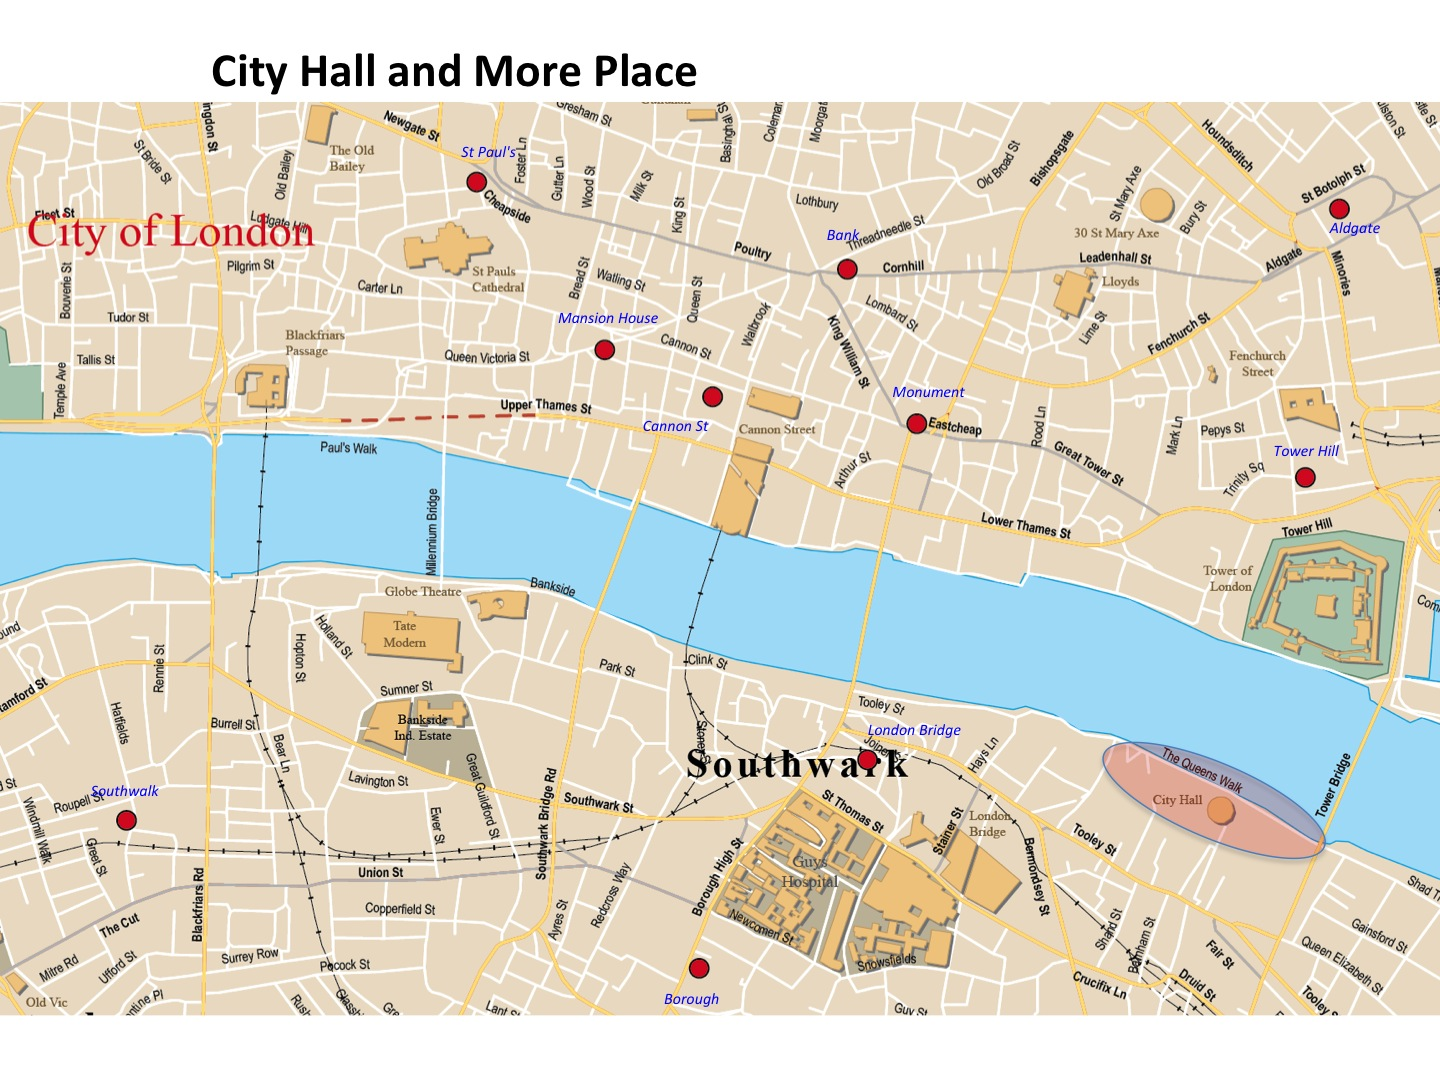 City Of London Map.City Hall And More Place Map London Photo Areas And Routes